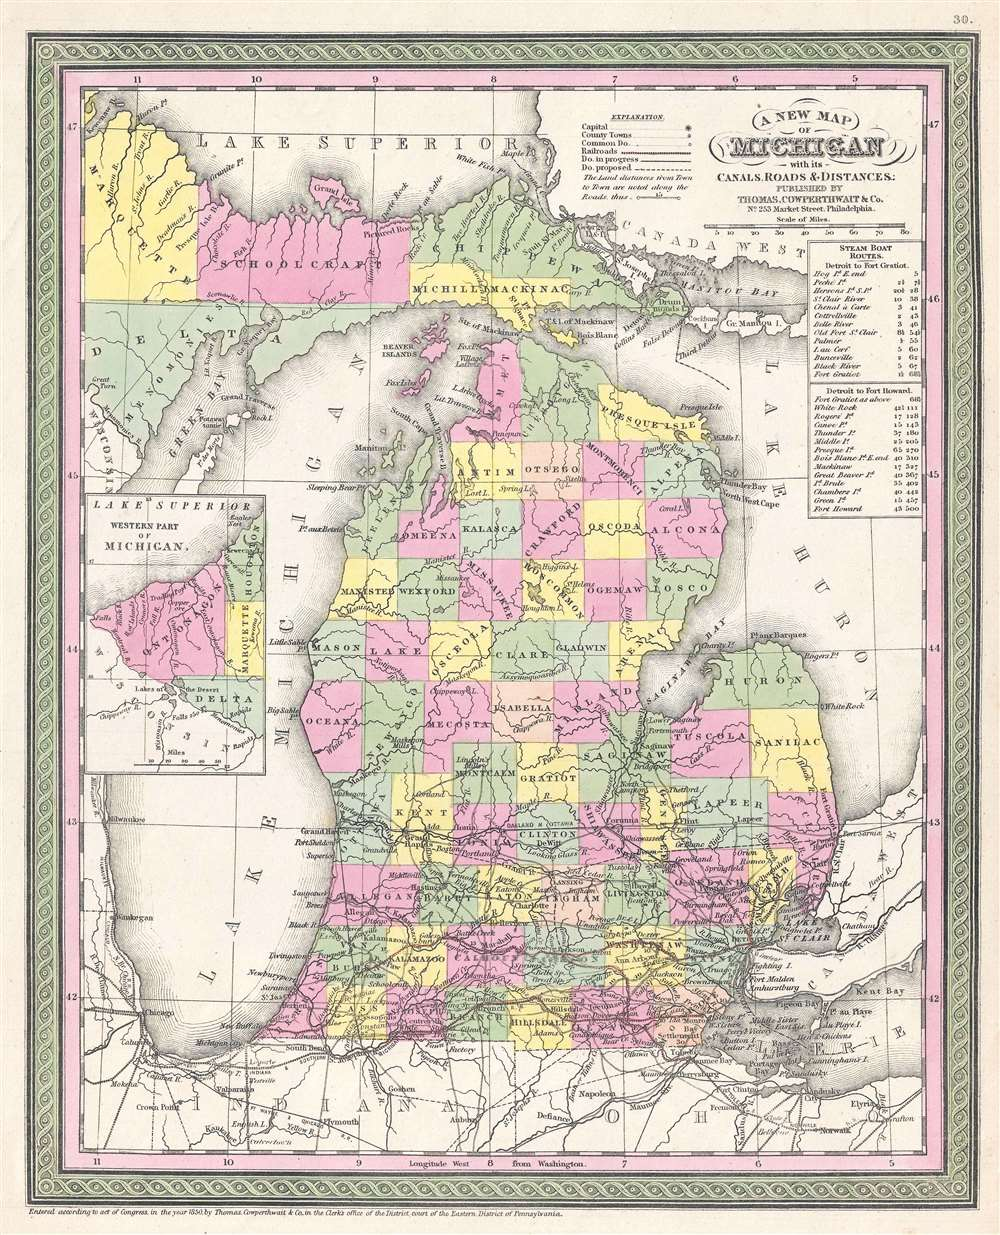 A New Map of Michigan with its Canals, Roads and Distances. - Main View